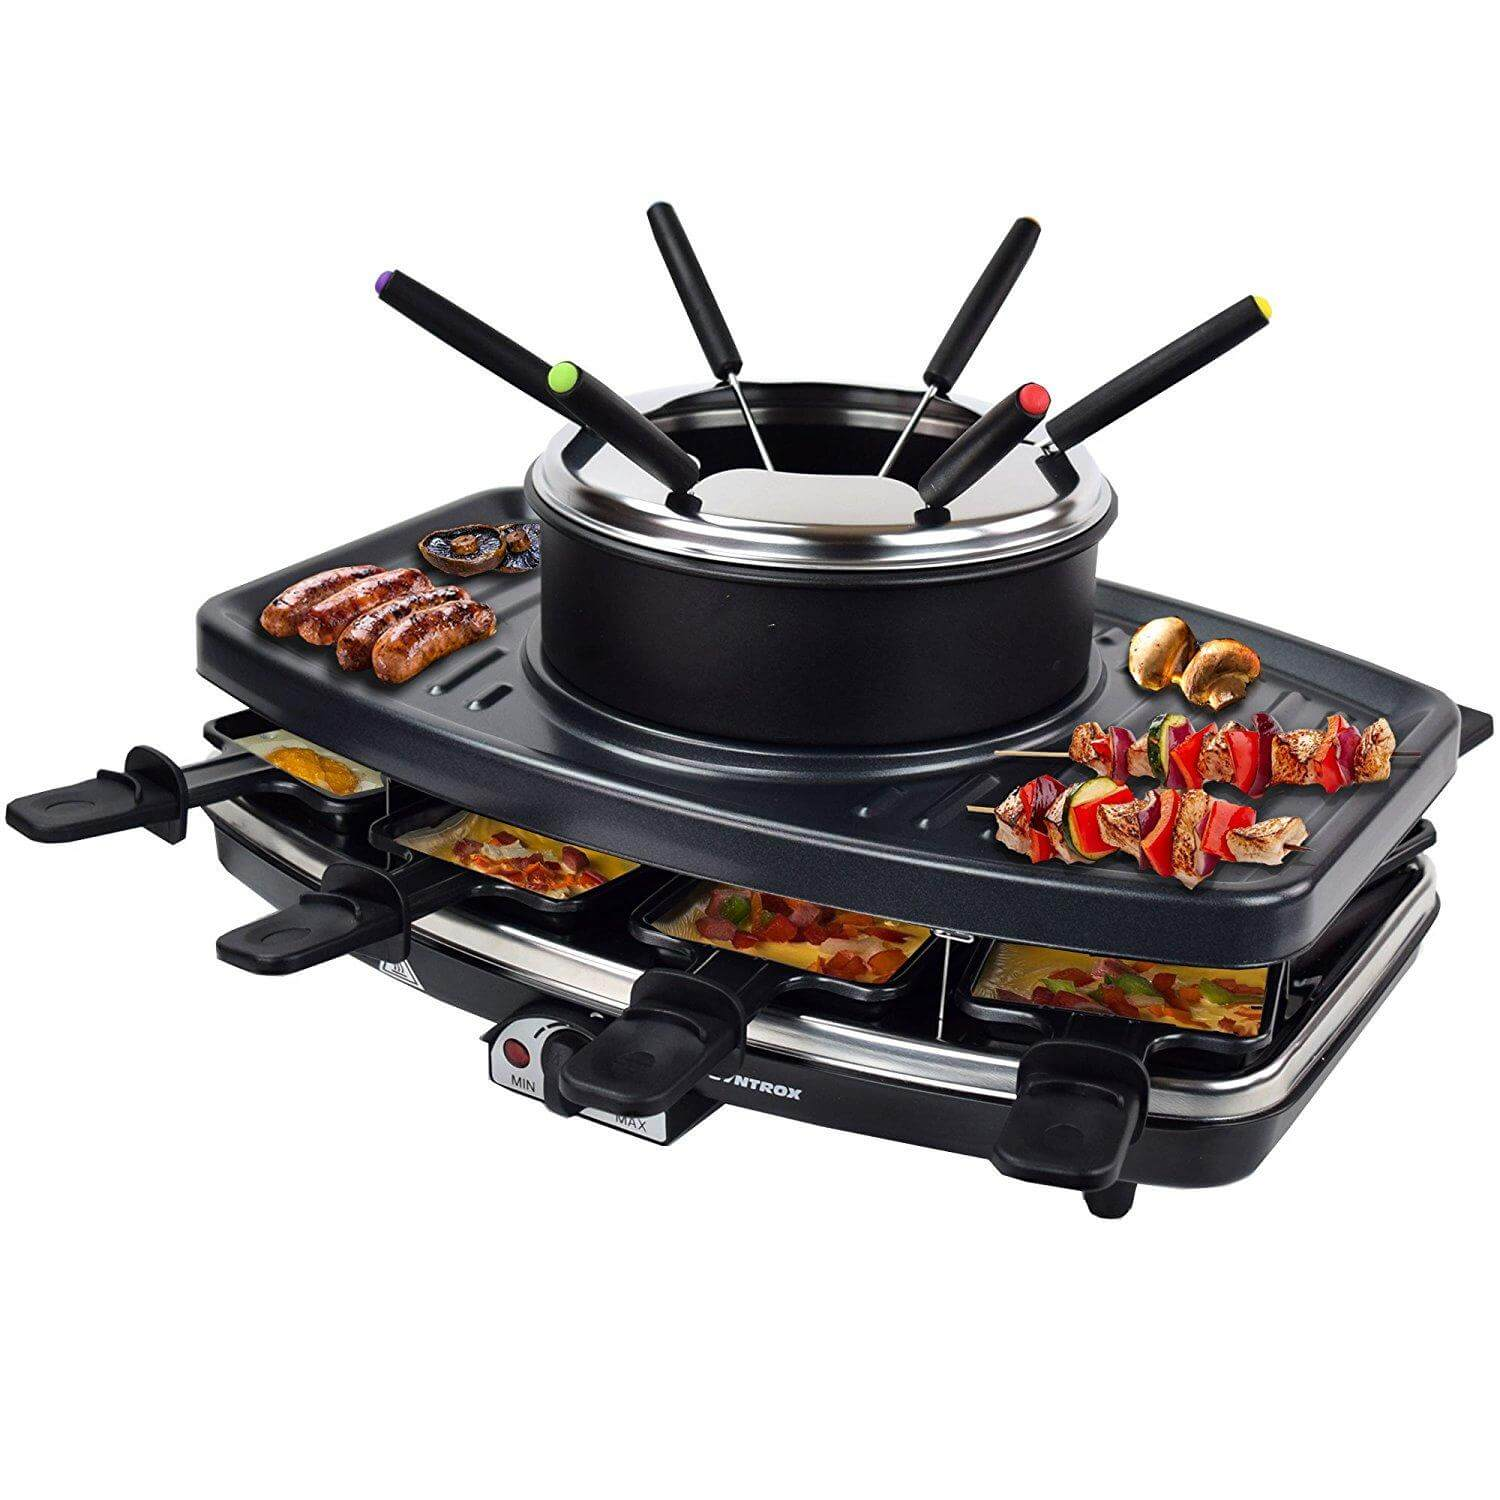 Syntrox Raclette Grill mit Fondue